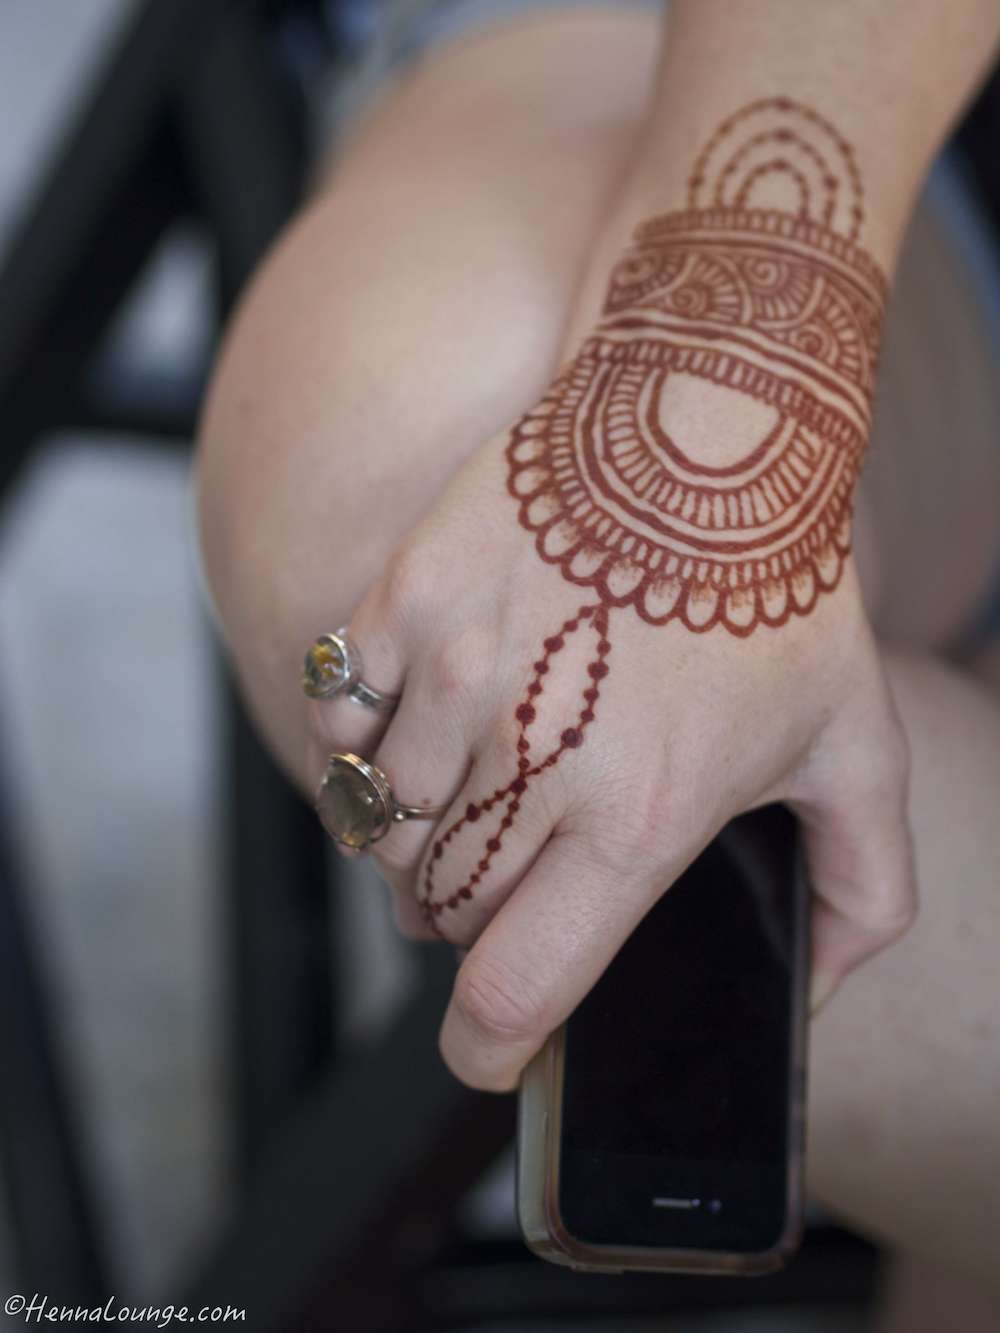 Henna and technology